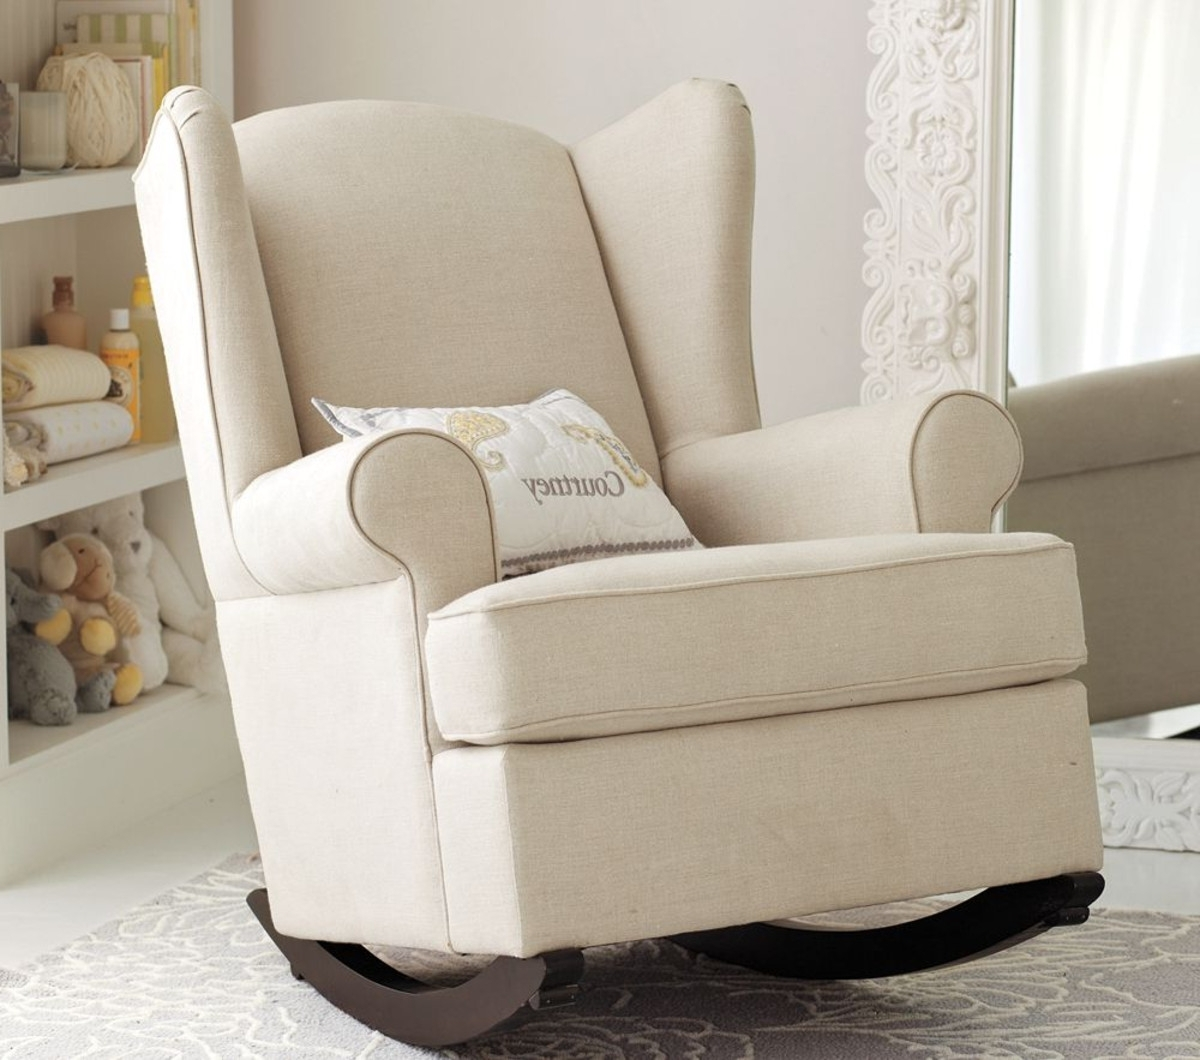 Editeestrela Design Throughout Trendy Rocking Sofa Chairs (View 3 of 15)